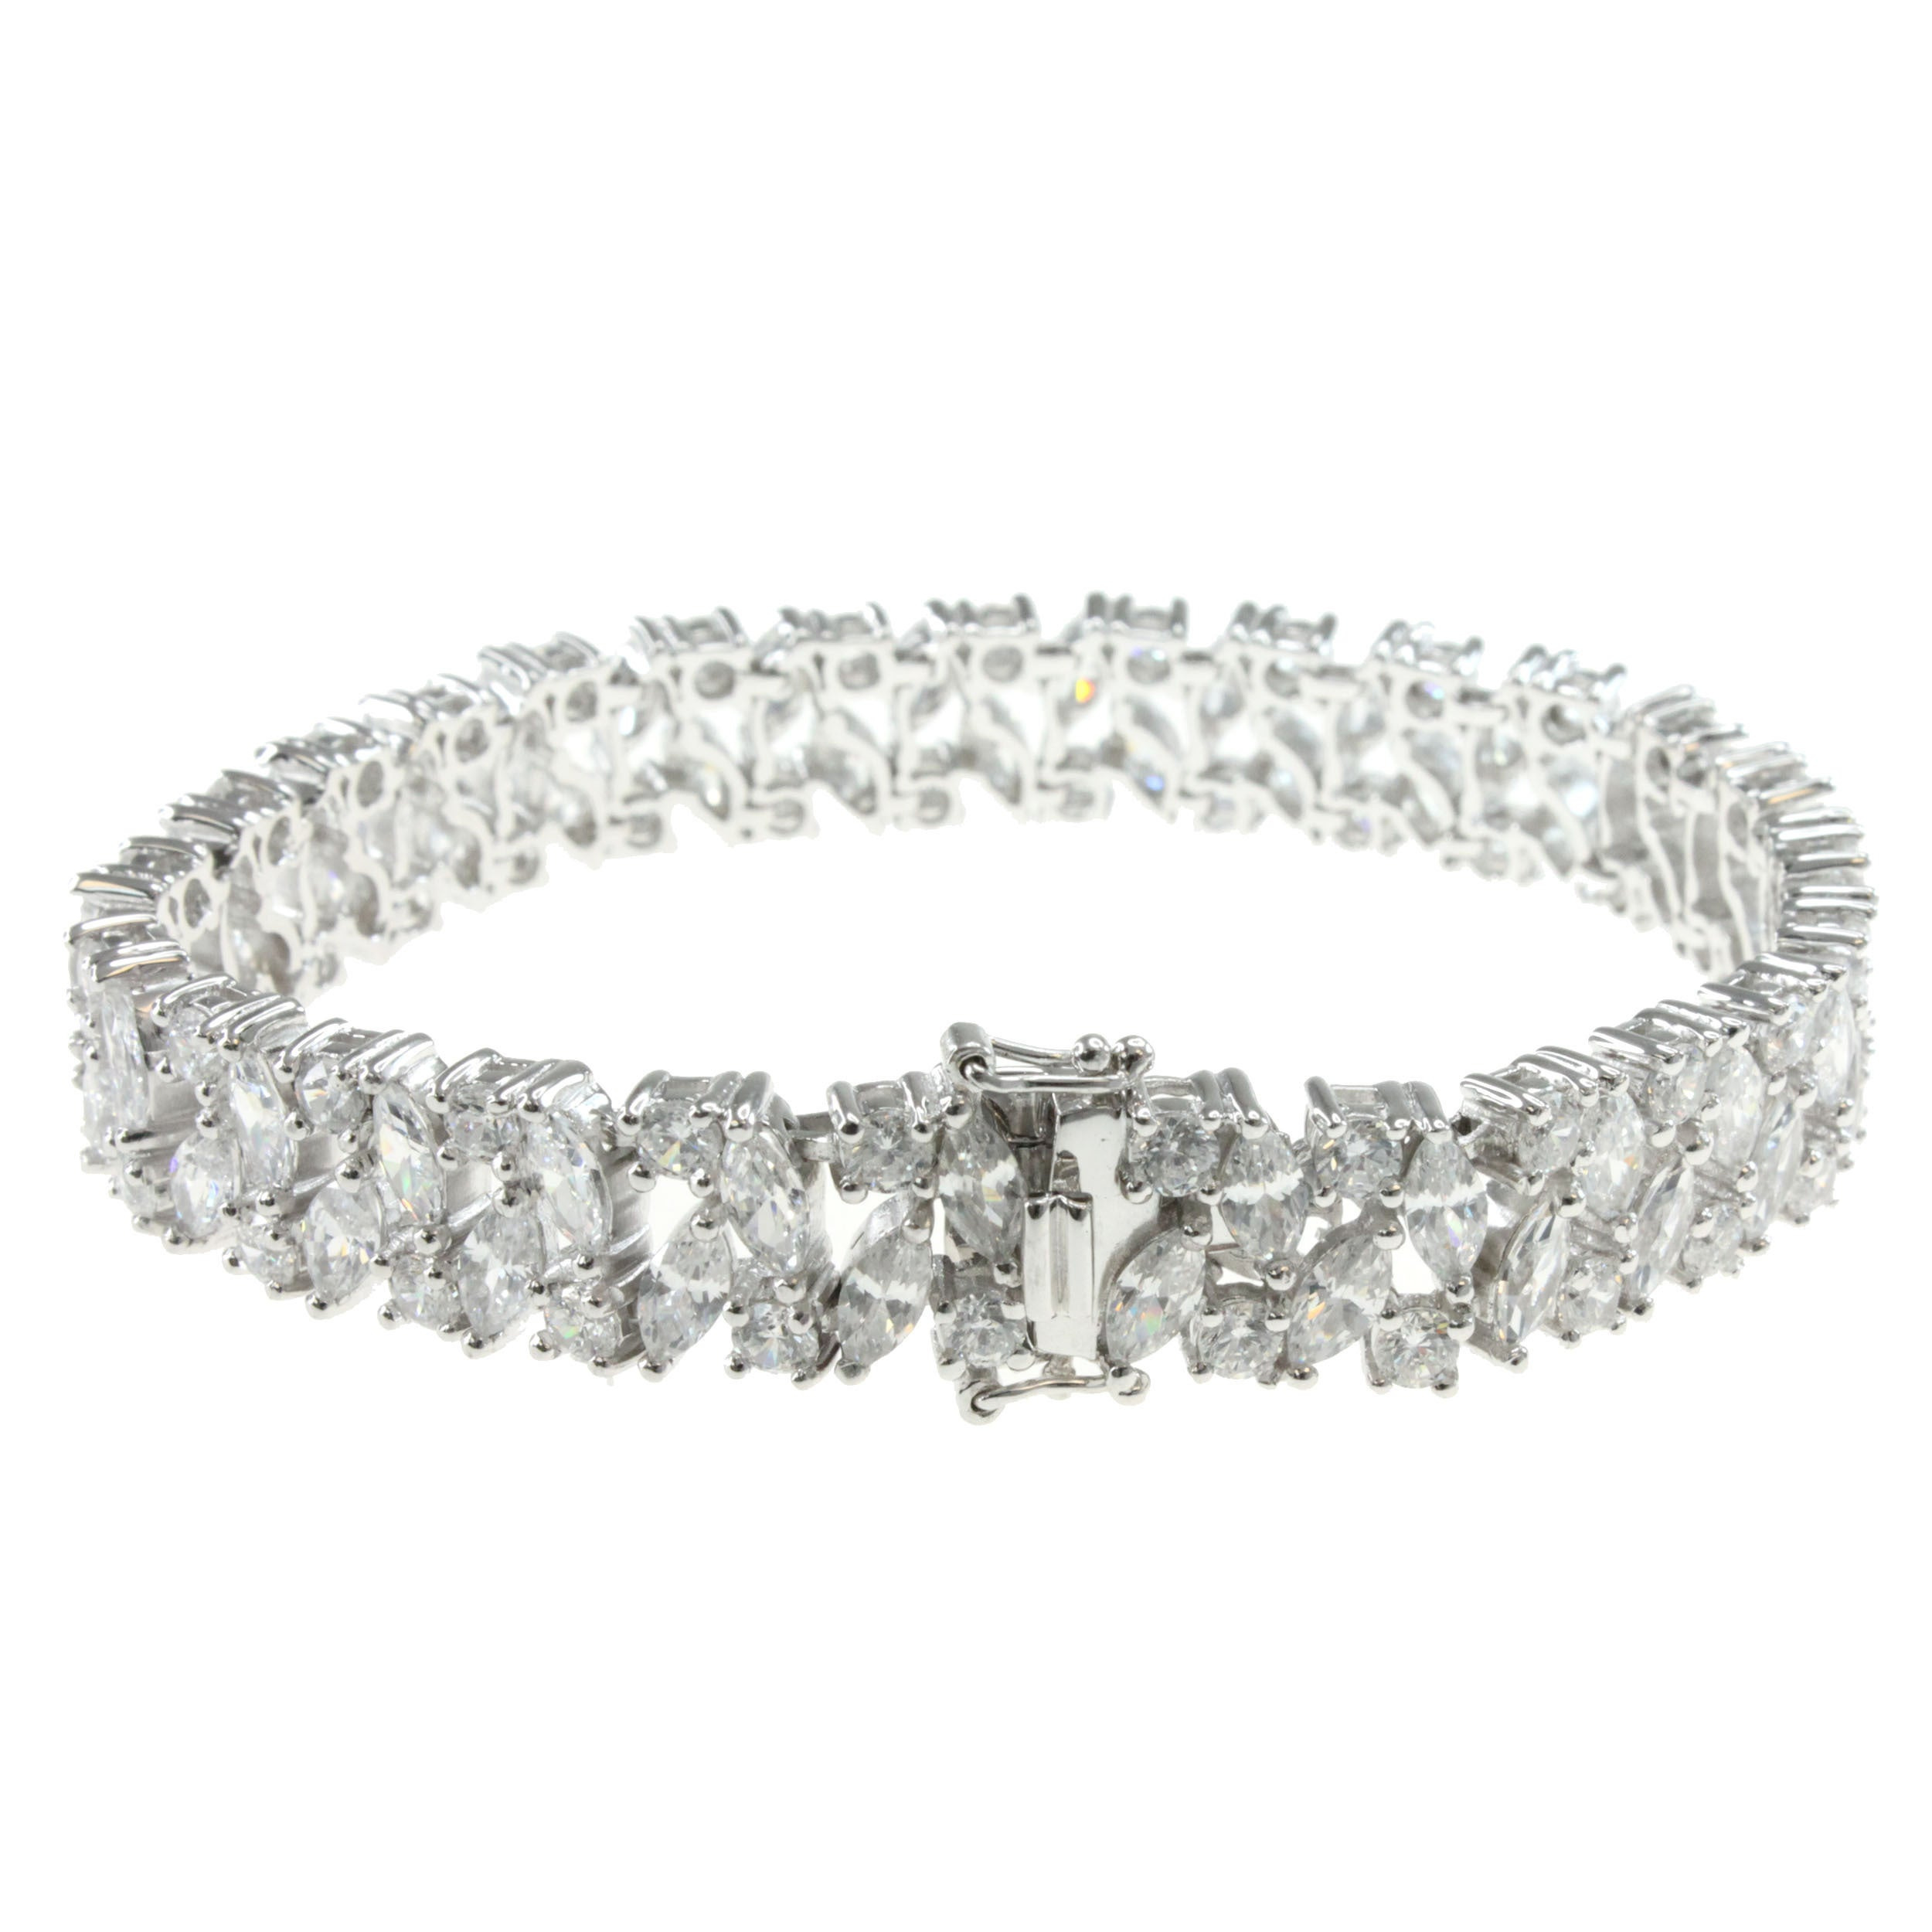 jewelry marquise diamonds cts white cut pear round high featuring diamond jewellery a graff bracelet collections shape and